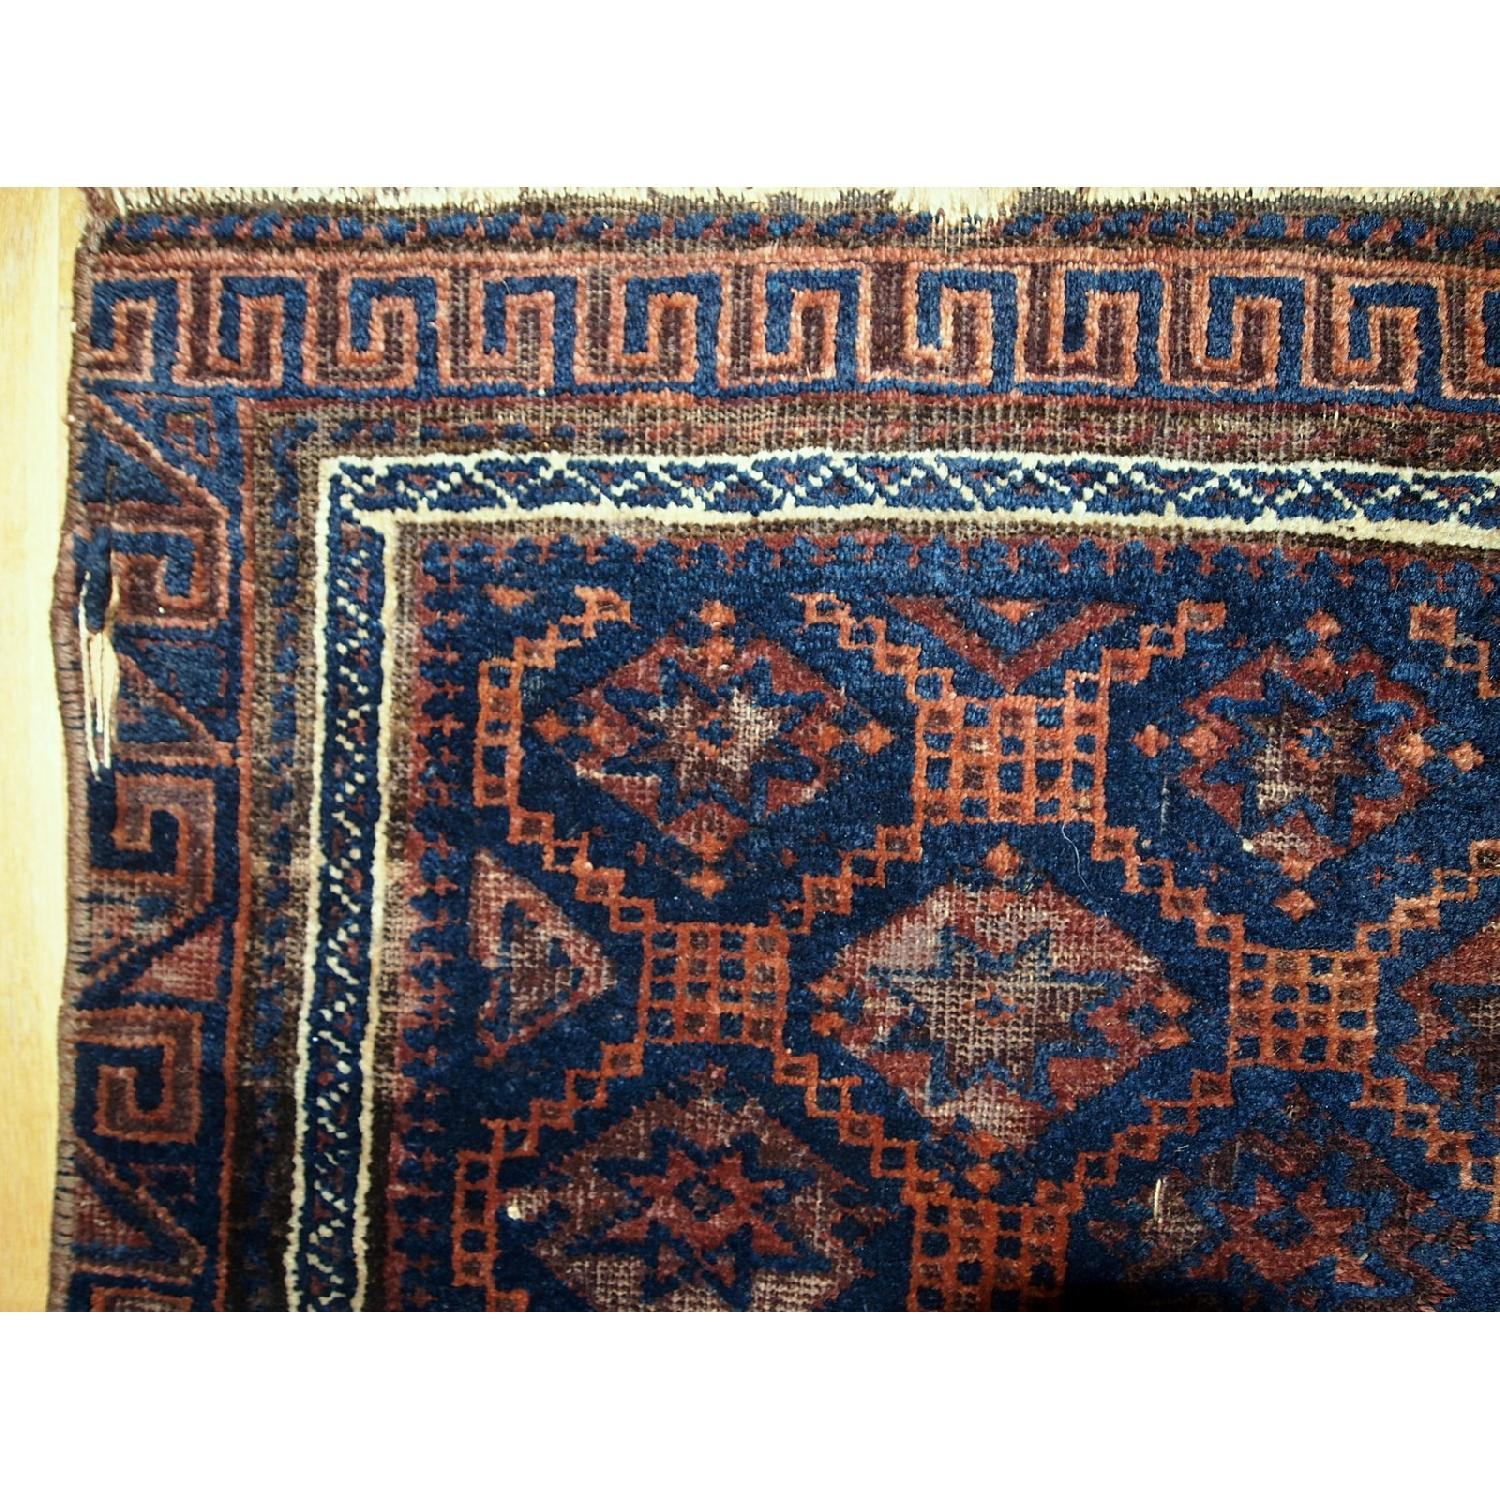 Antique Handmade Collectible Afghan Baluch Bag Face Rug-7